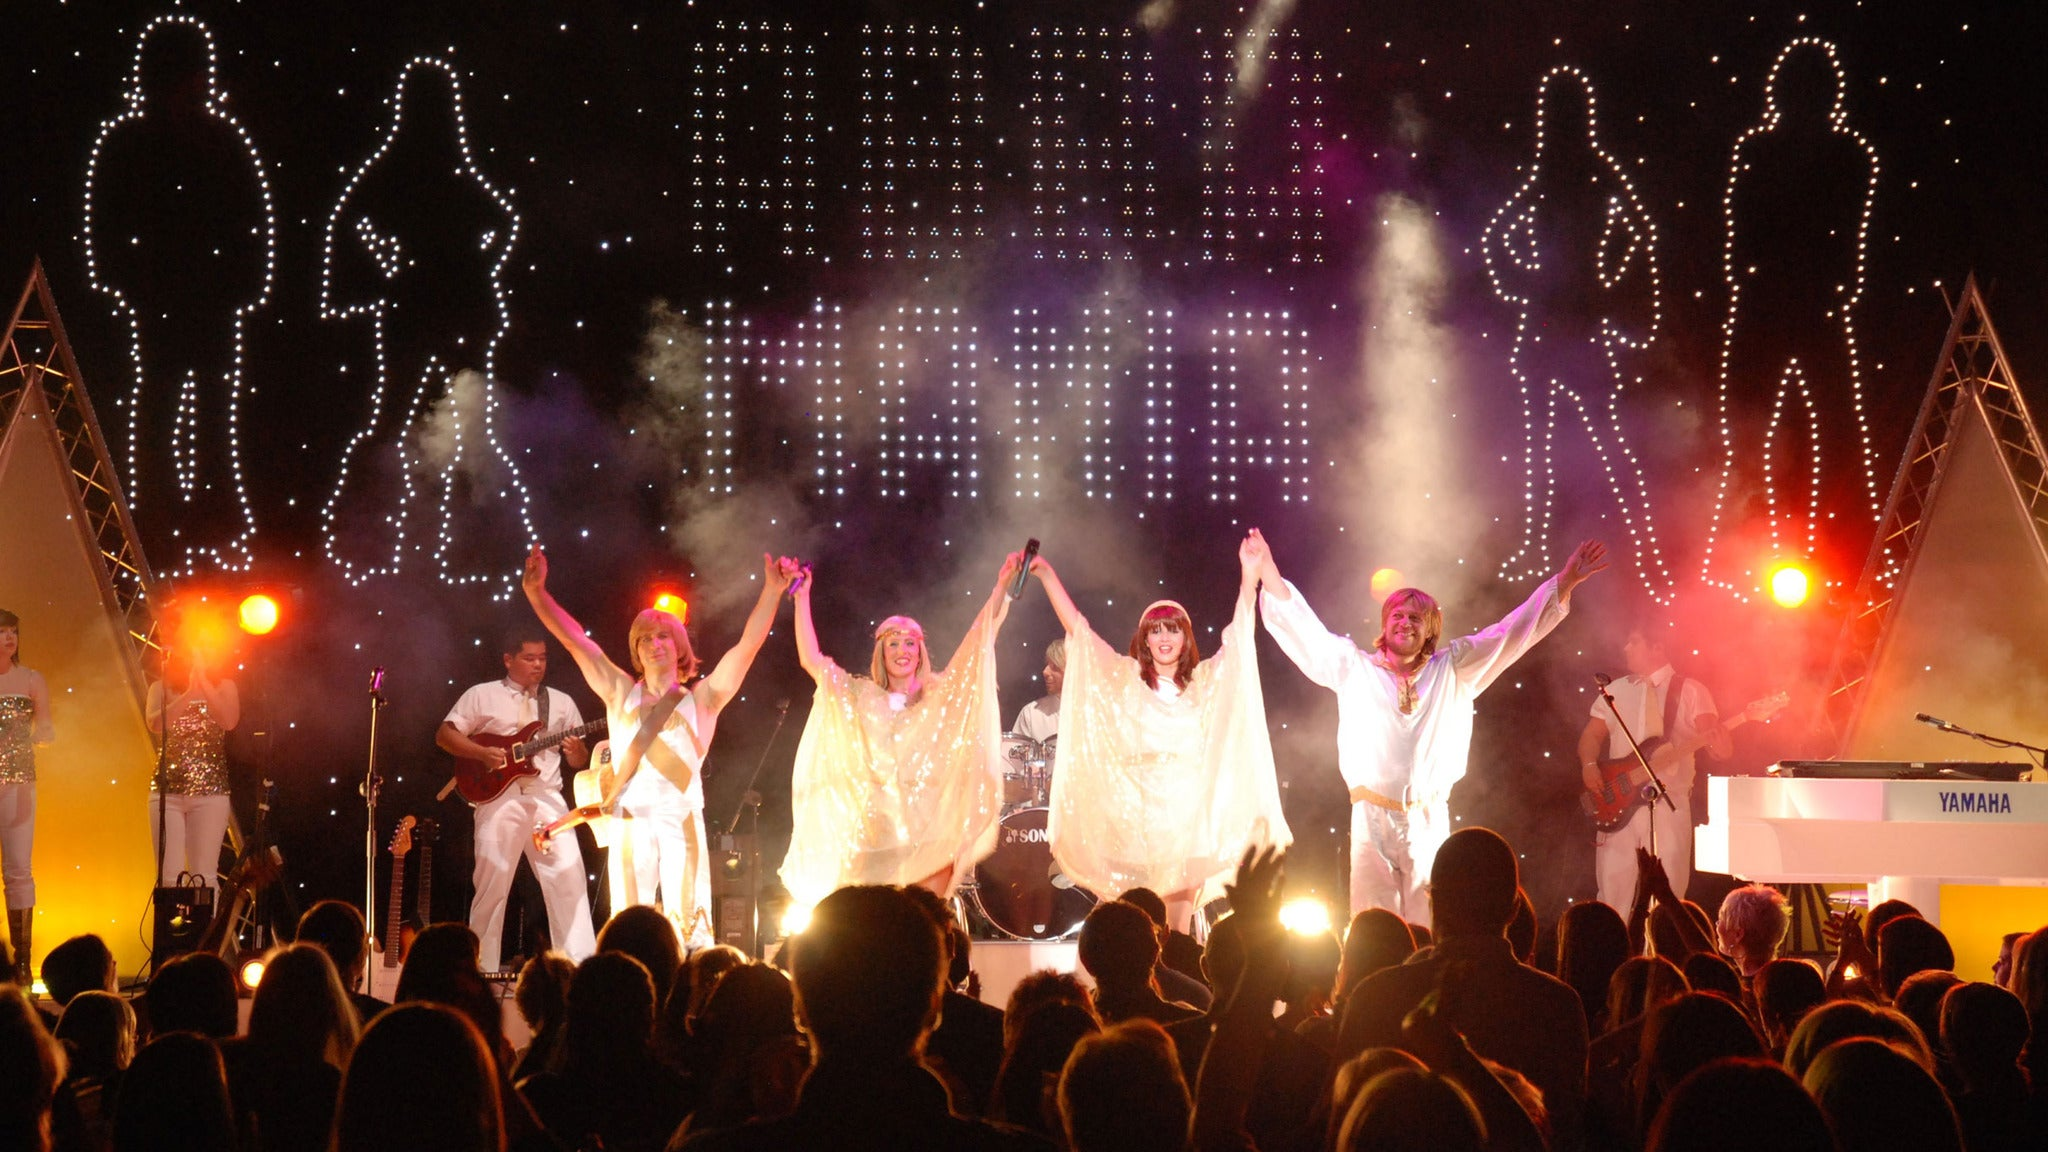 Abba Mania at Genesee Theatre